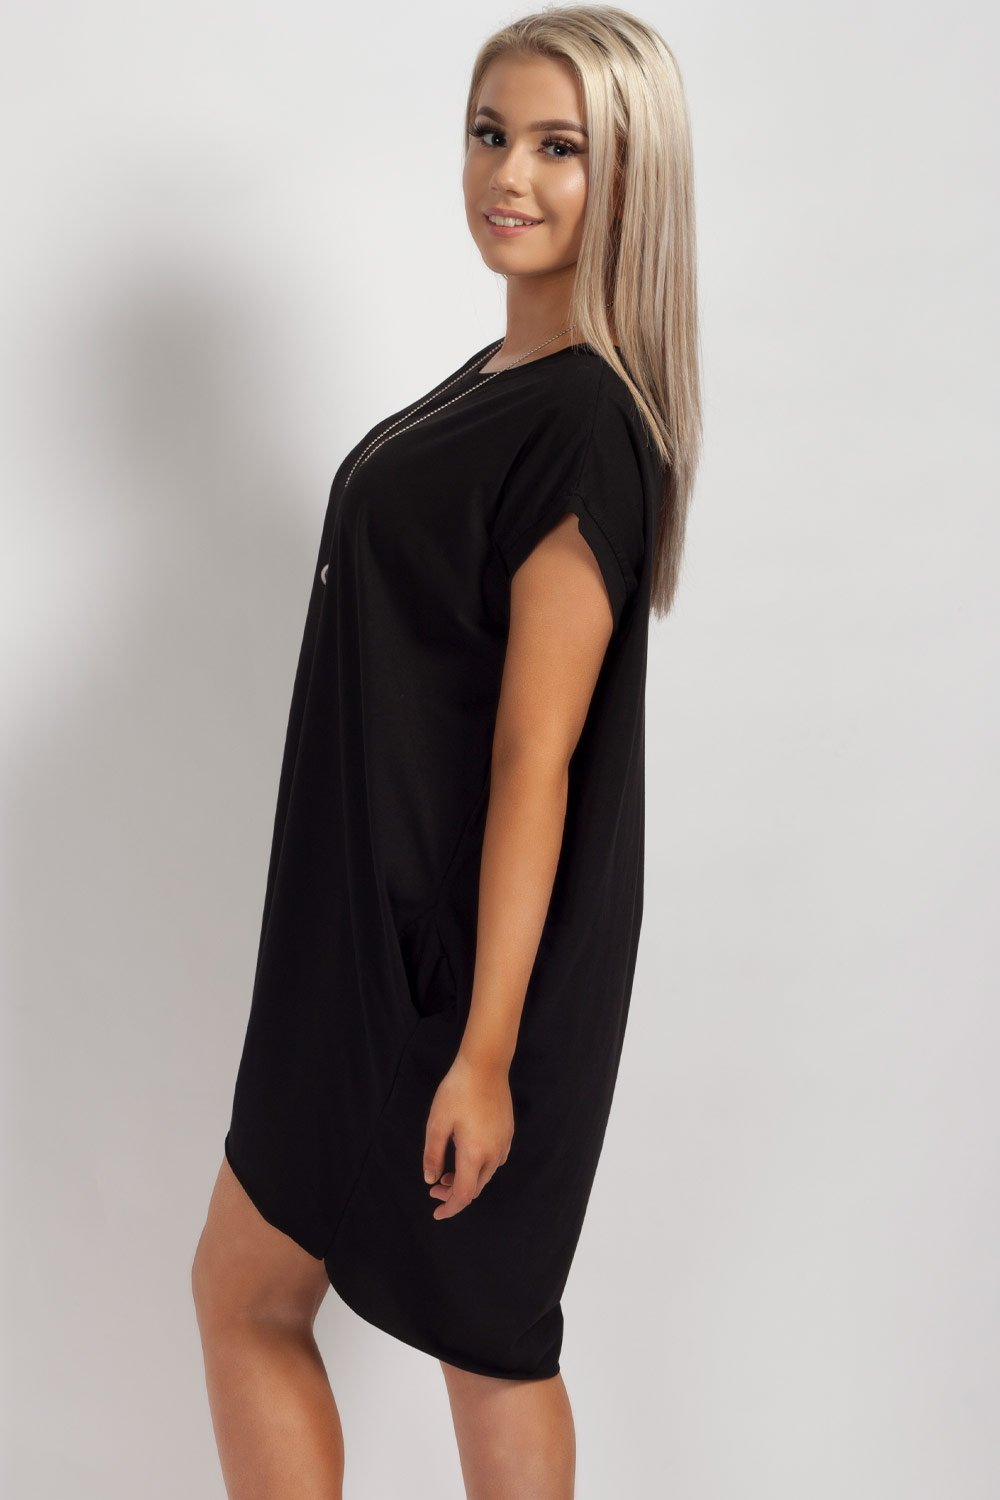 black oversized top uk